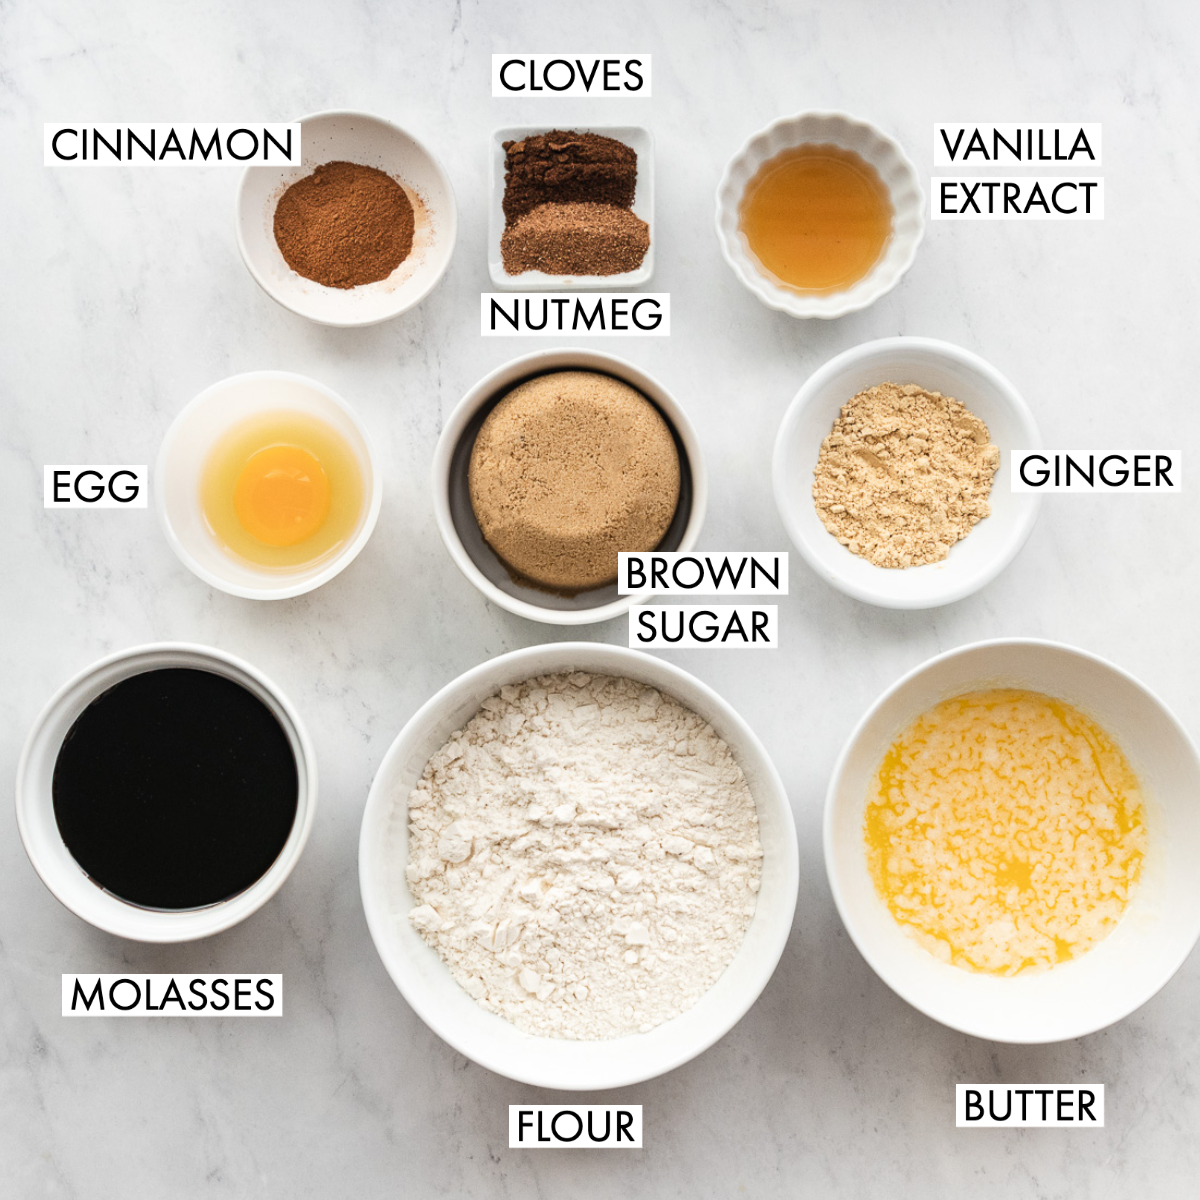 image of ingredients for gingerbread bars